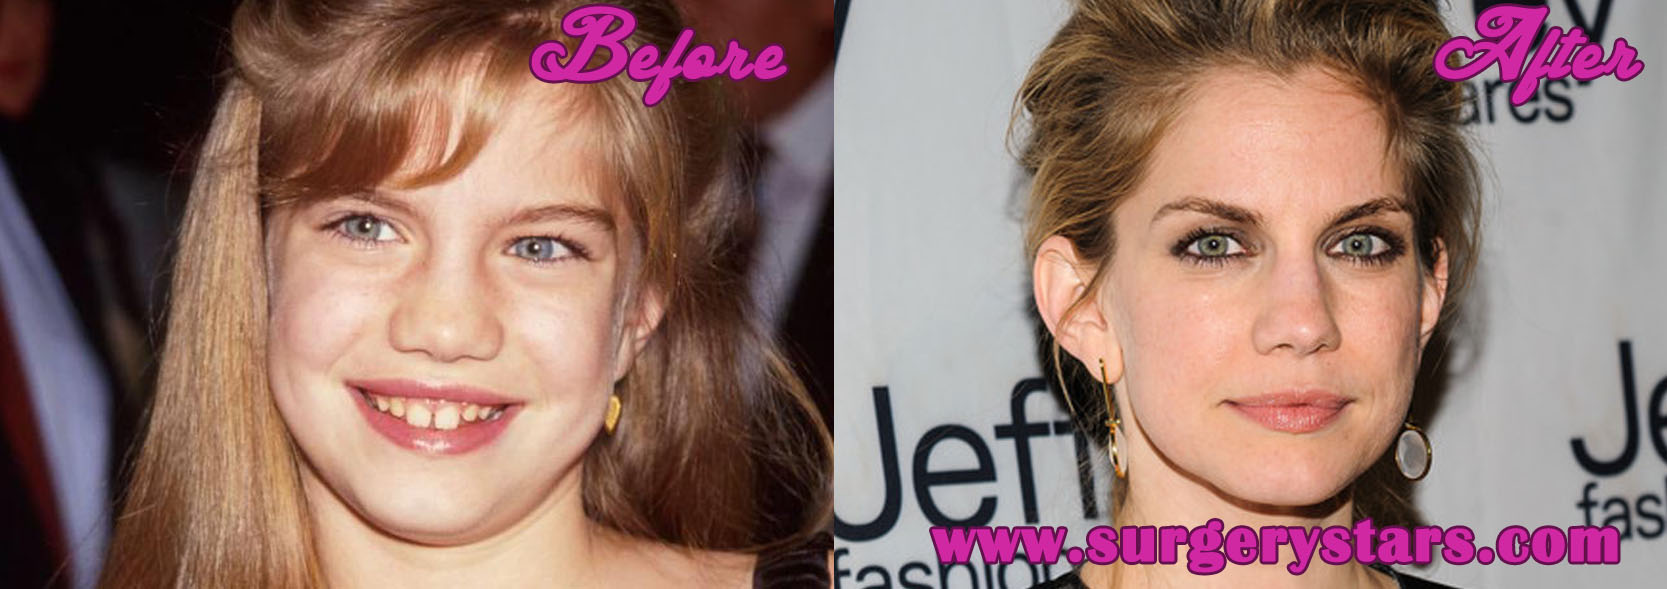 Anna Chlumsky Nose Job Before and After Pictures Lindsay Lohan Rumors